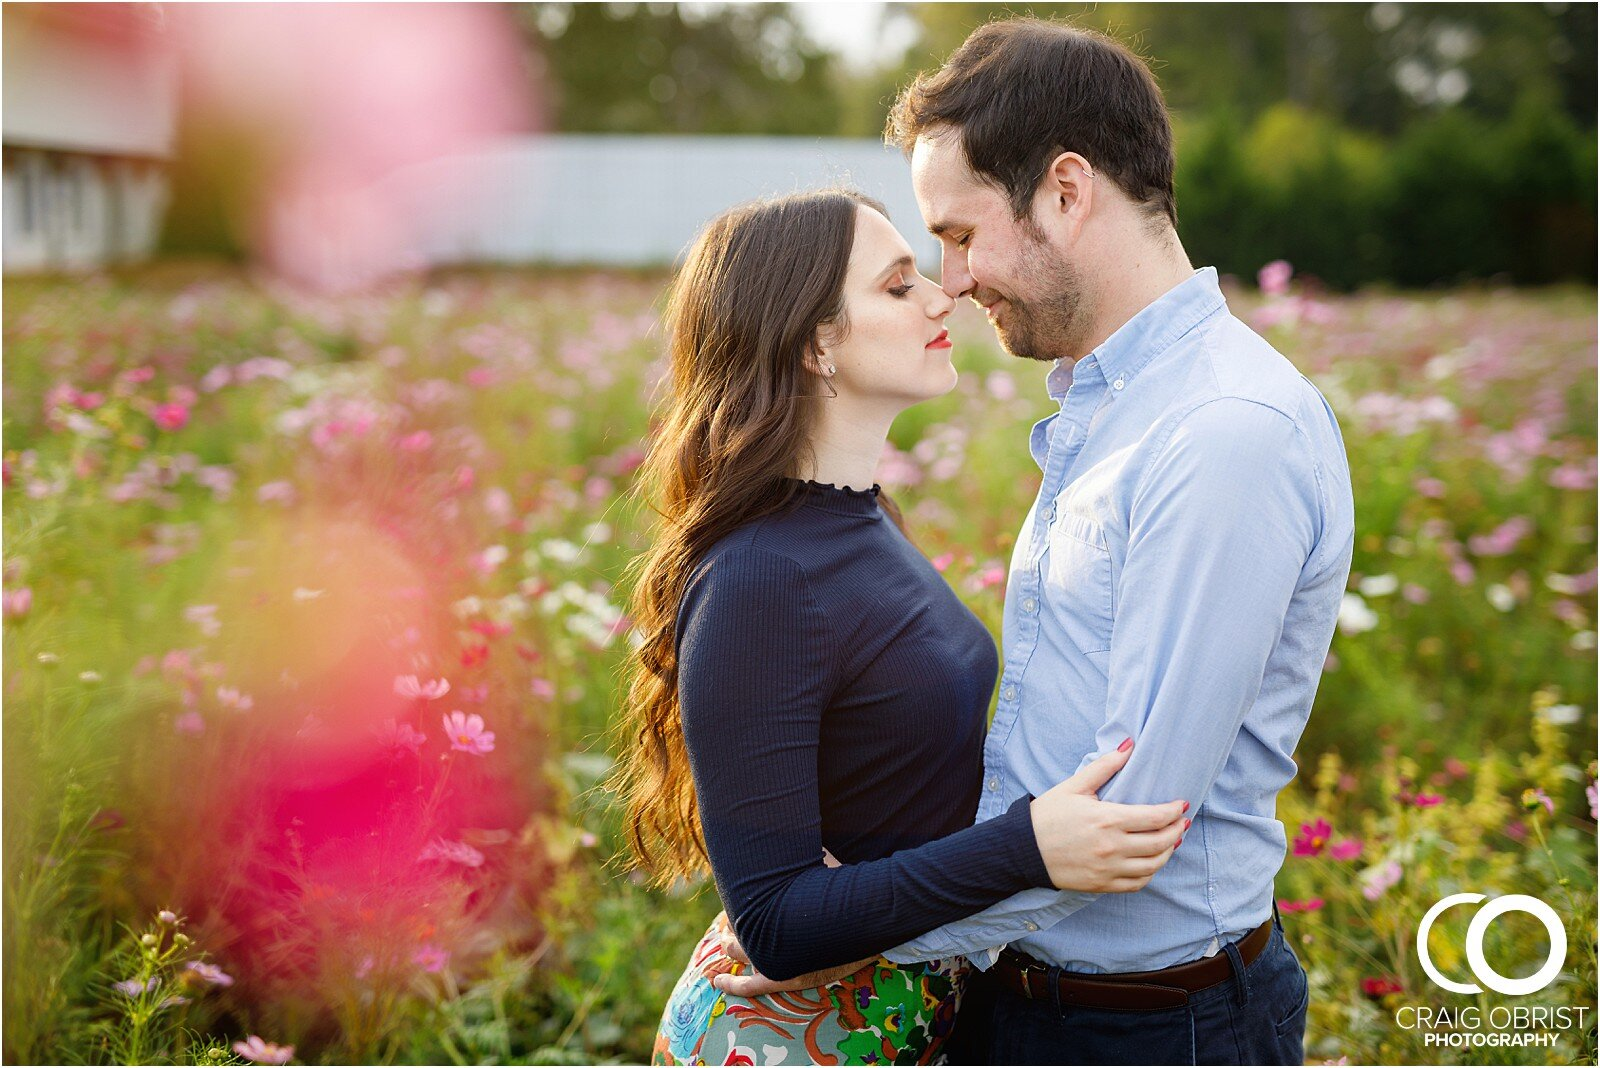 The Barn at Little River Little River Farms Engagement Wedding Portraits Fairy Tale_0016.jpg